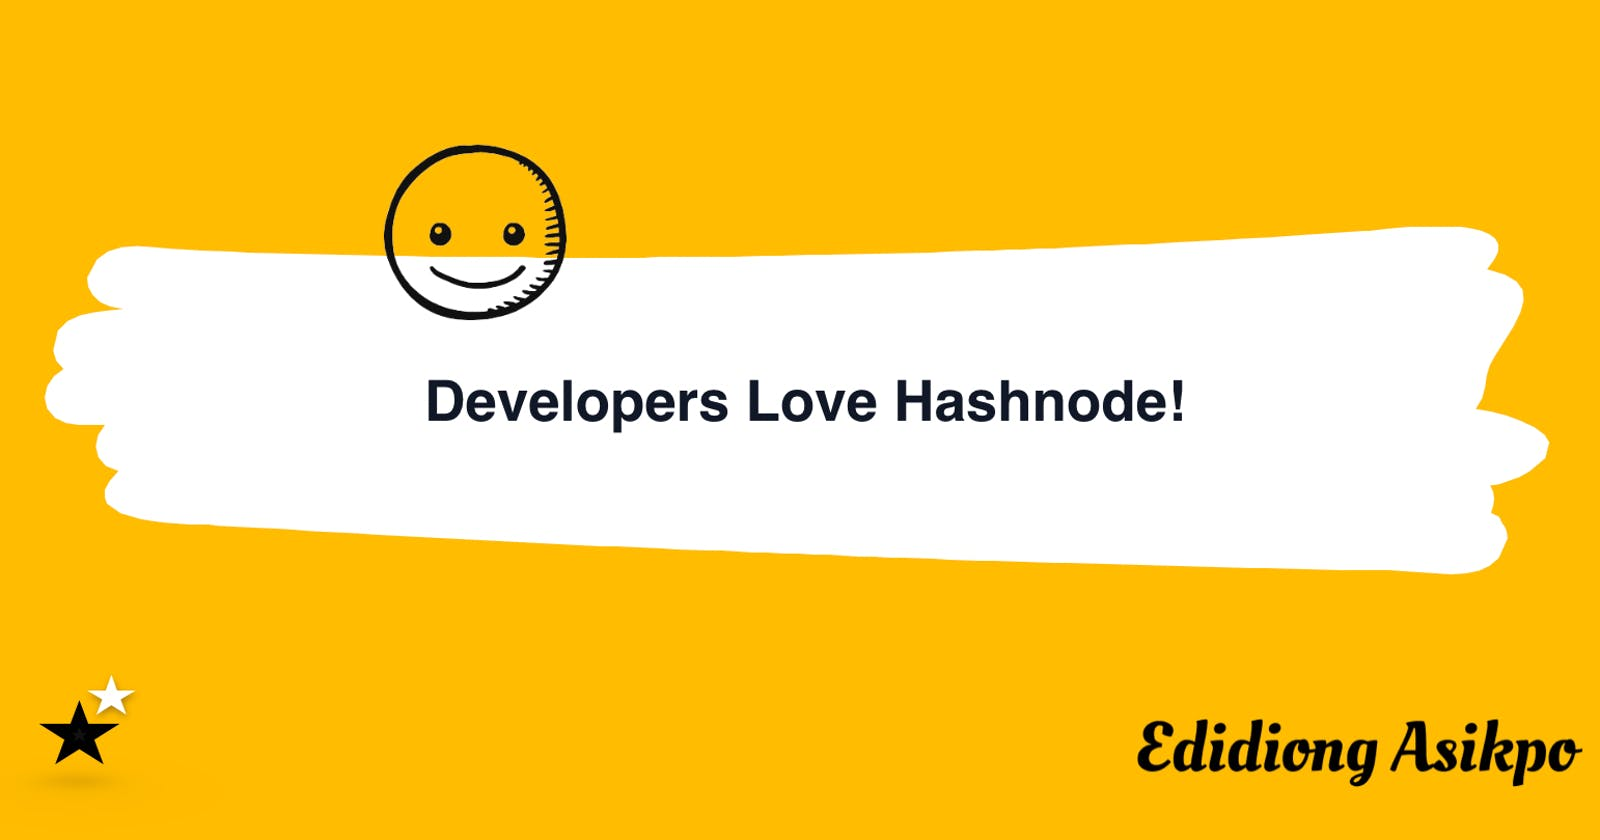 I asked 15 developers why they use Hashnode, and here's what they said